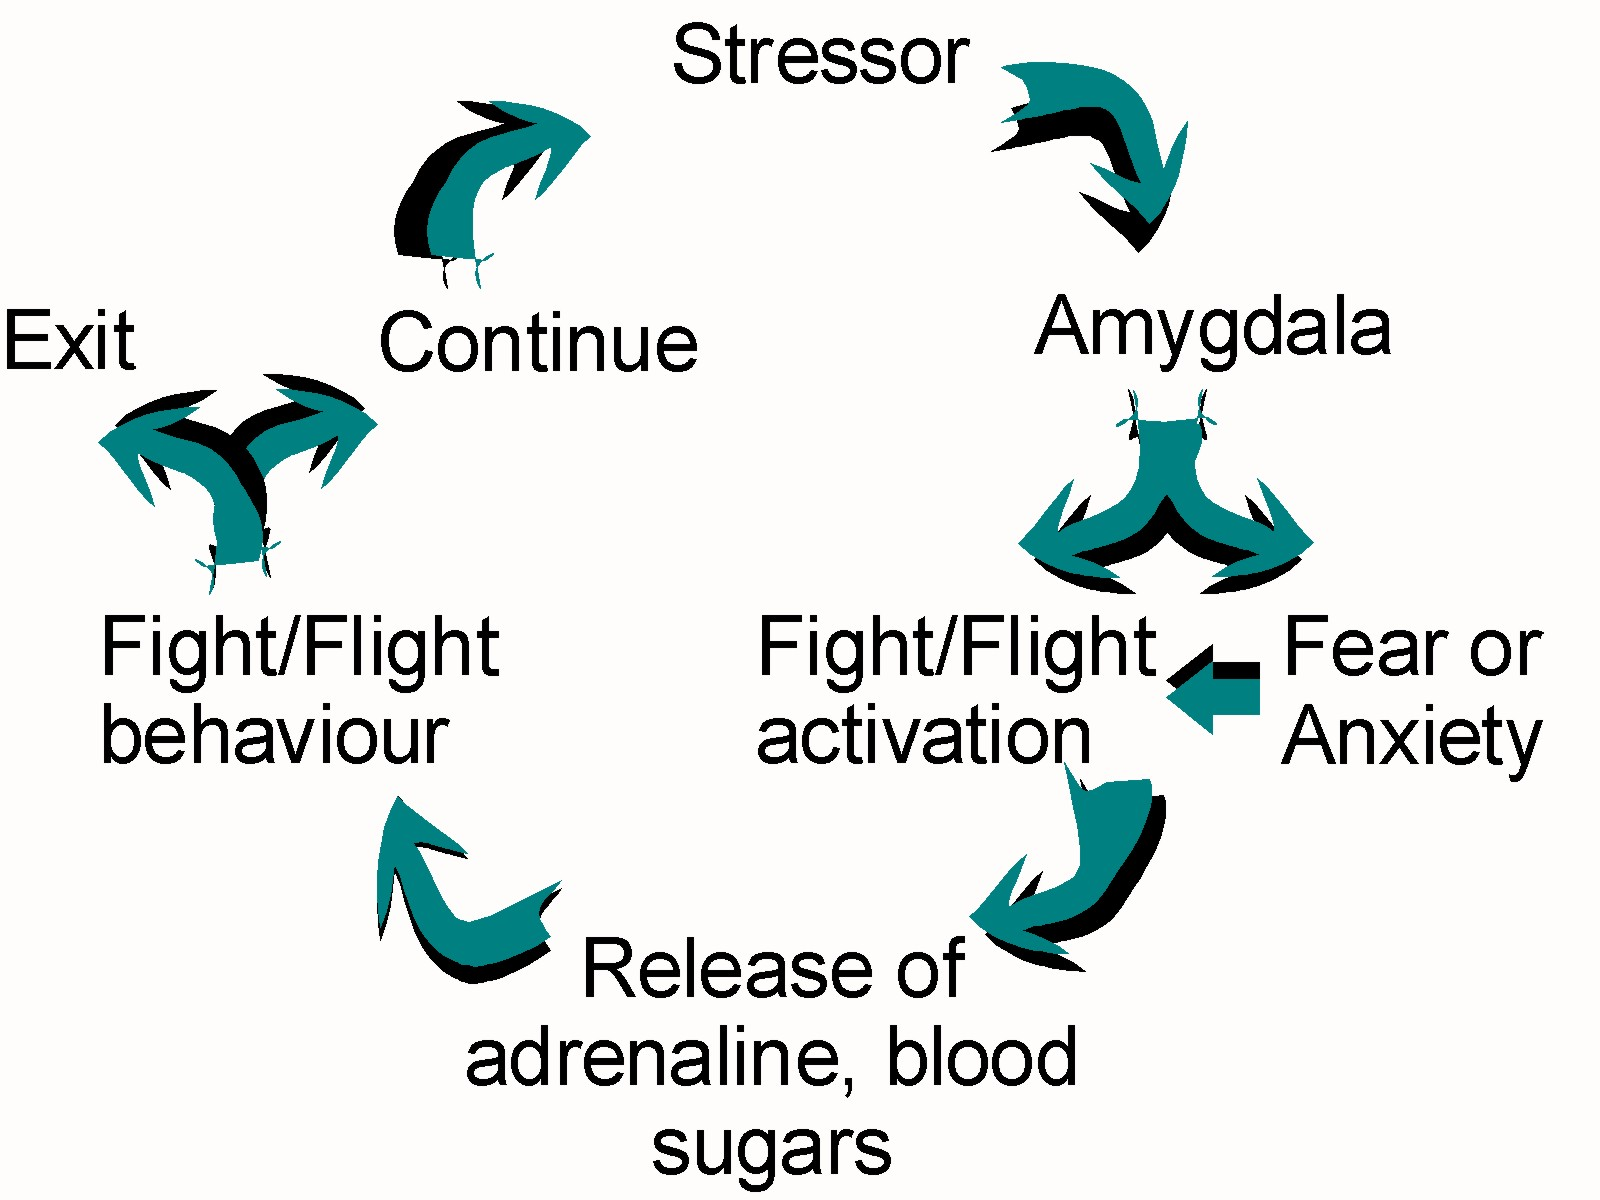 Taming the Amygdala